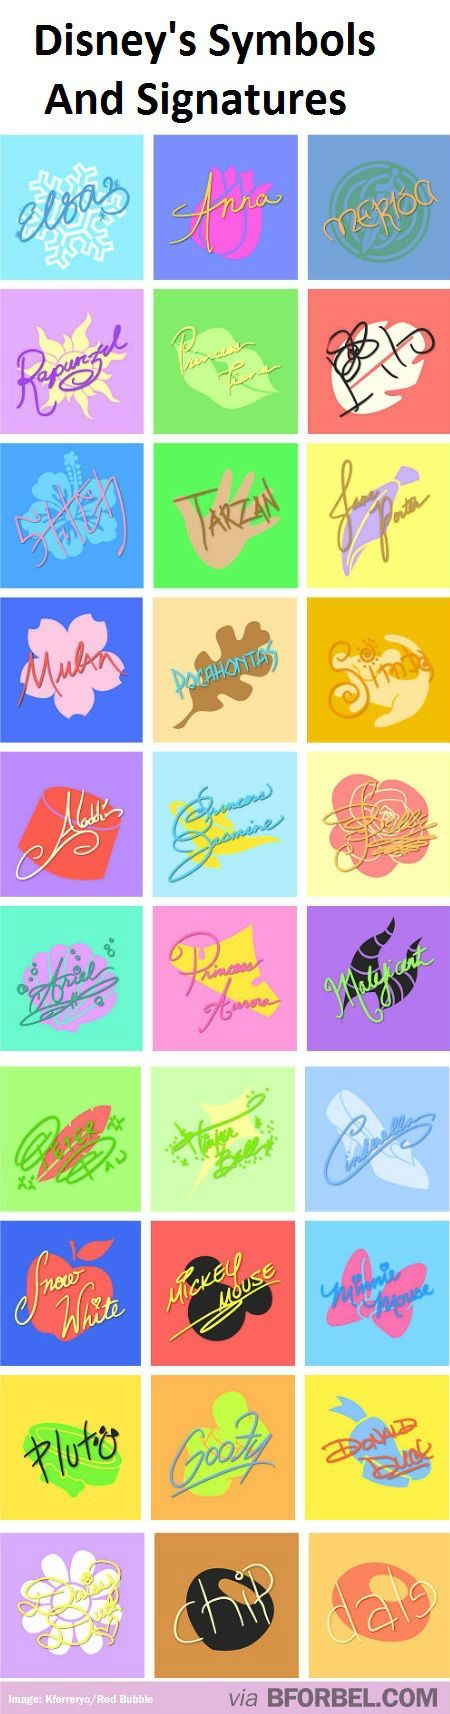 30 Disney Characters' Signatures| ELSA AND ANNA ARE ON THERE IM SO HAPPY